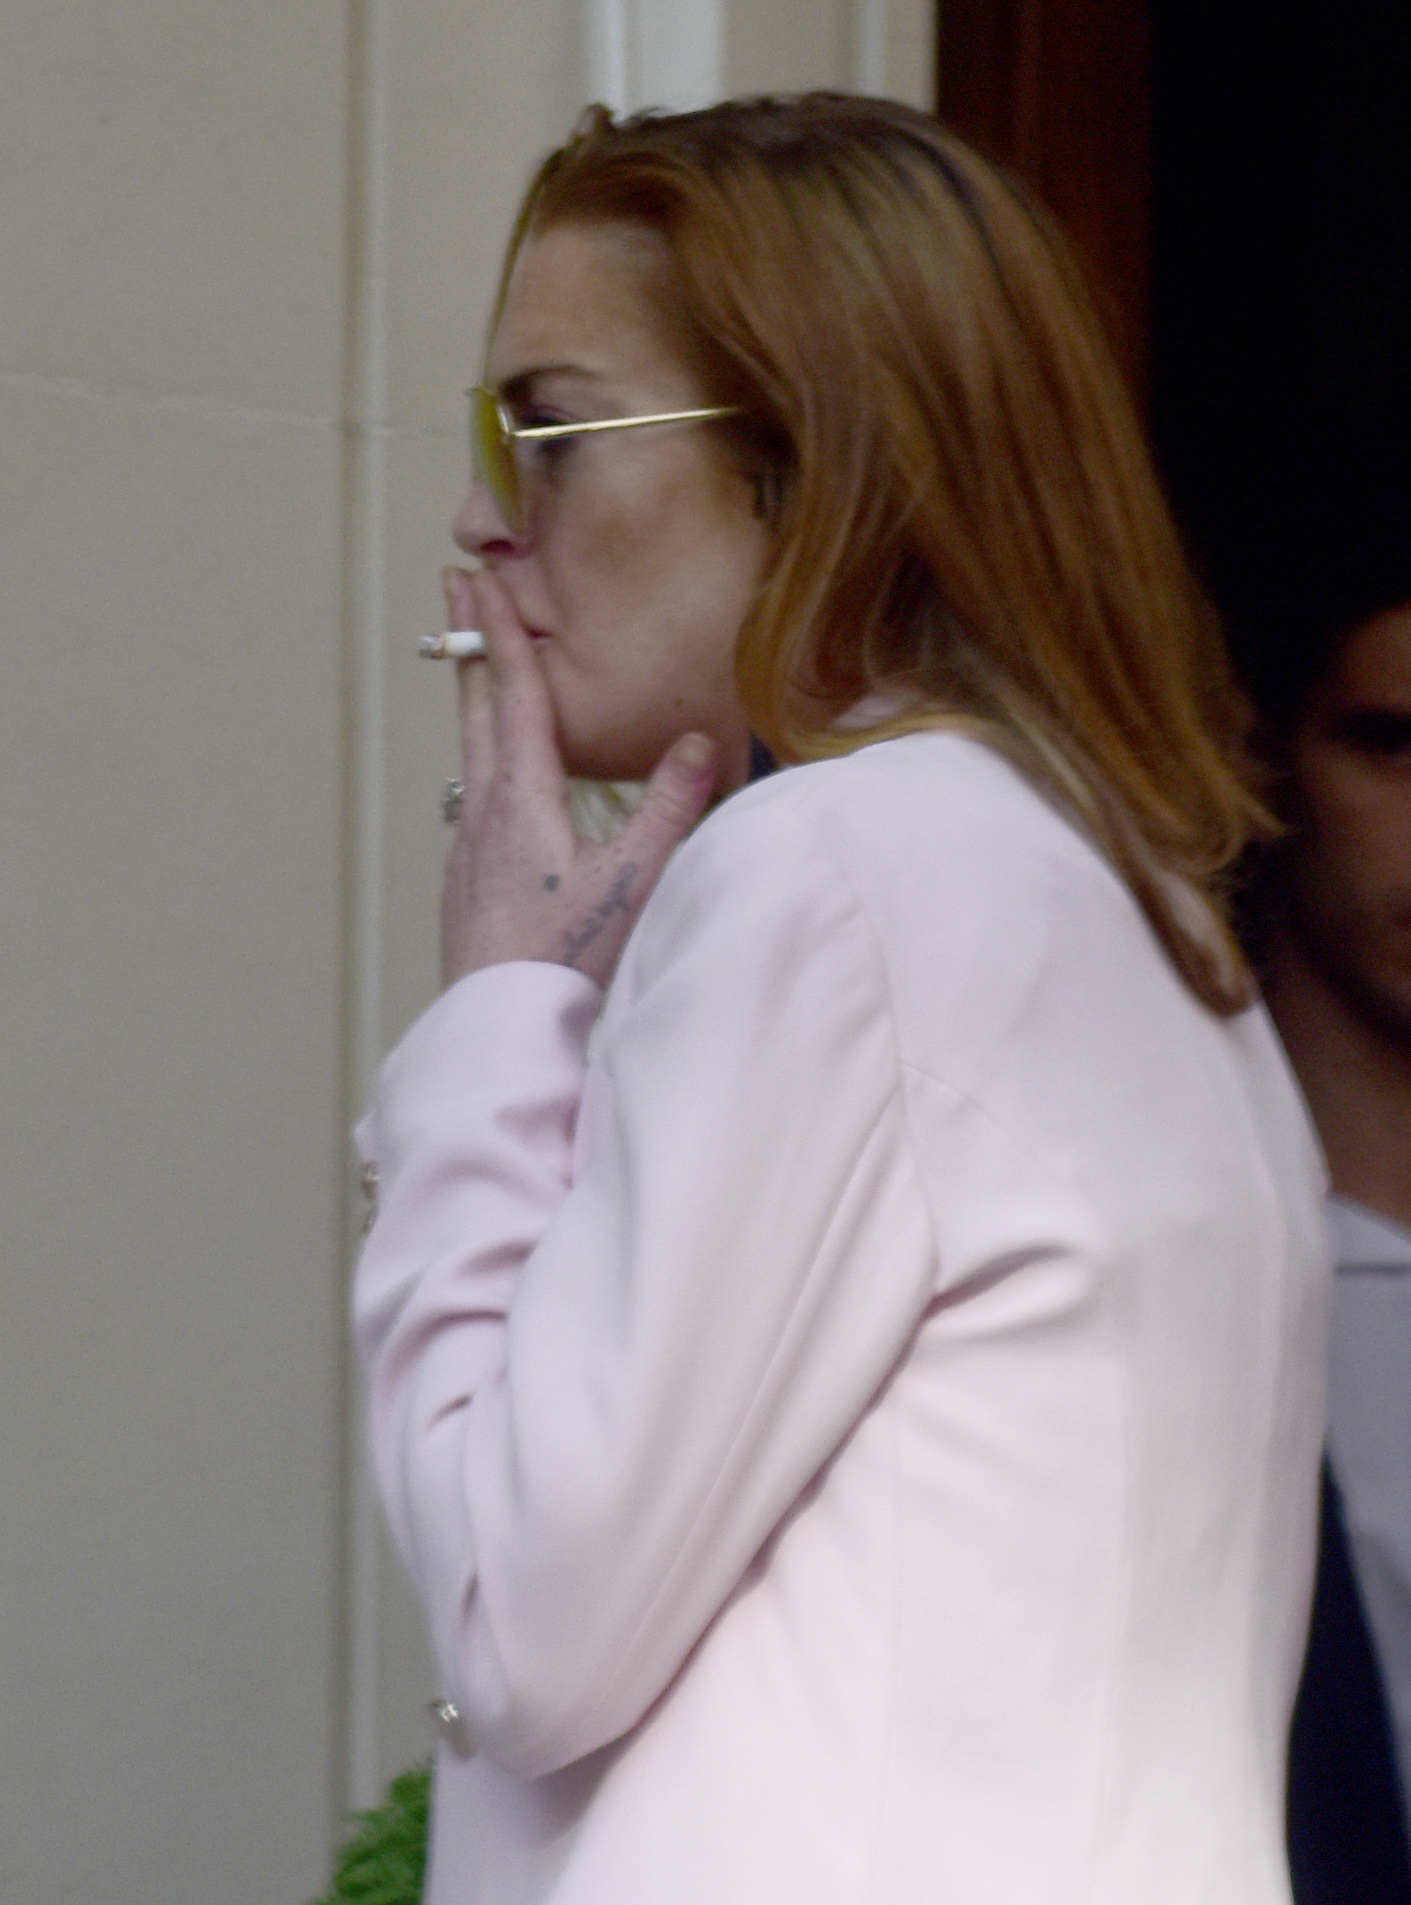 Lindsay Lohan seen in pink blazer outside a hotel smoking                                    Featuring: Lindsay Lohan                  Where: London, United Kingdom                  When: 23 Jun 2015                  Credit: WENN.com